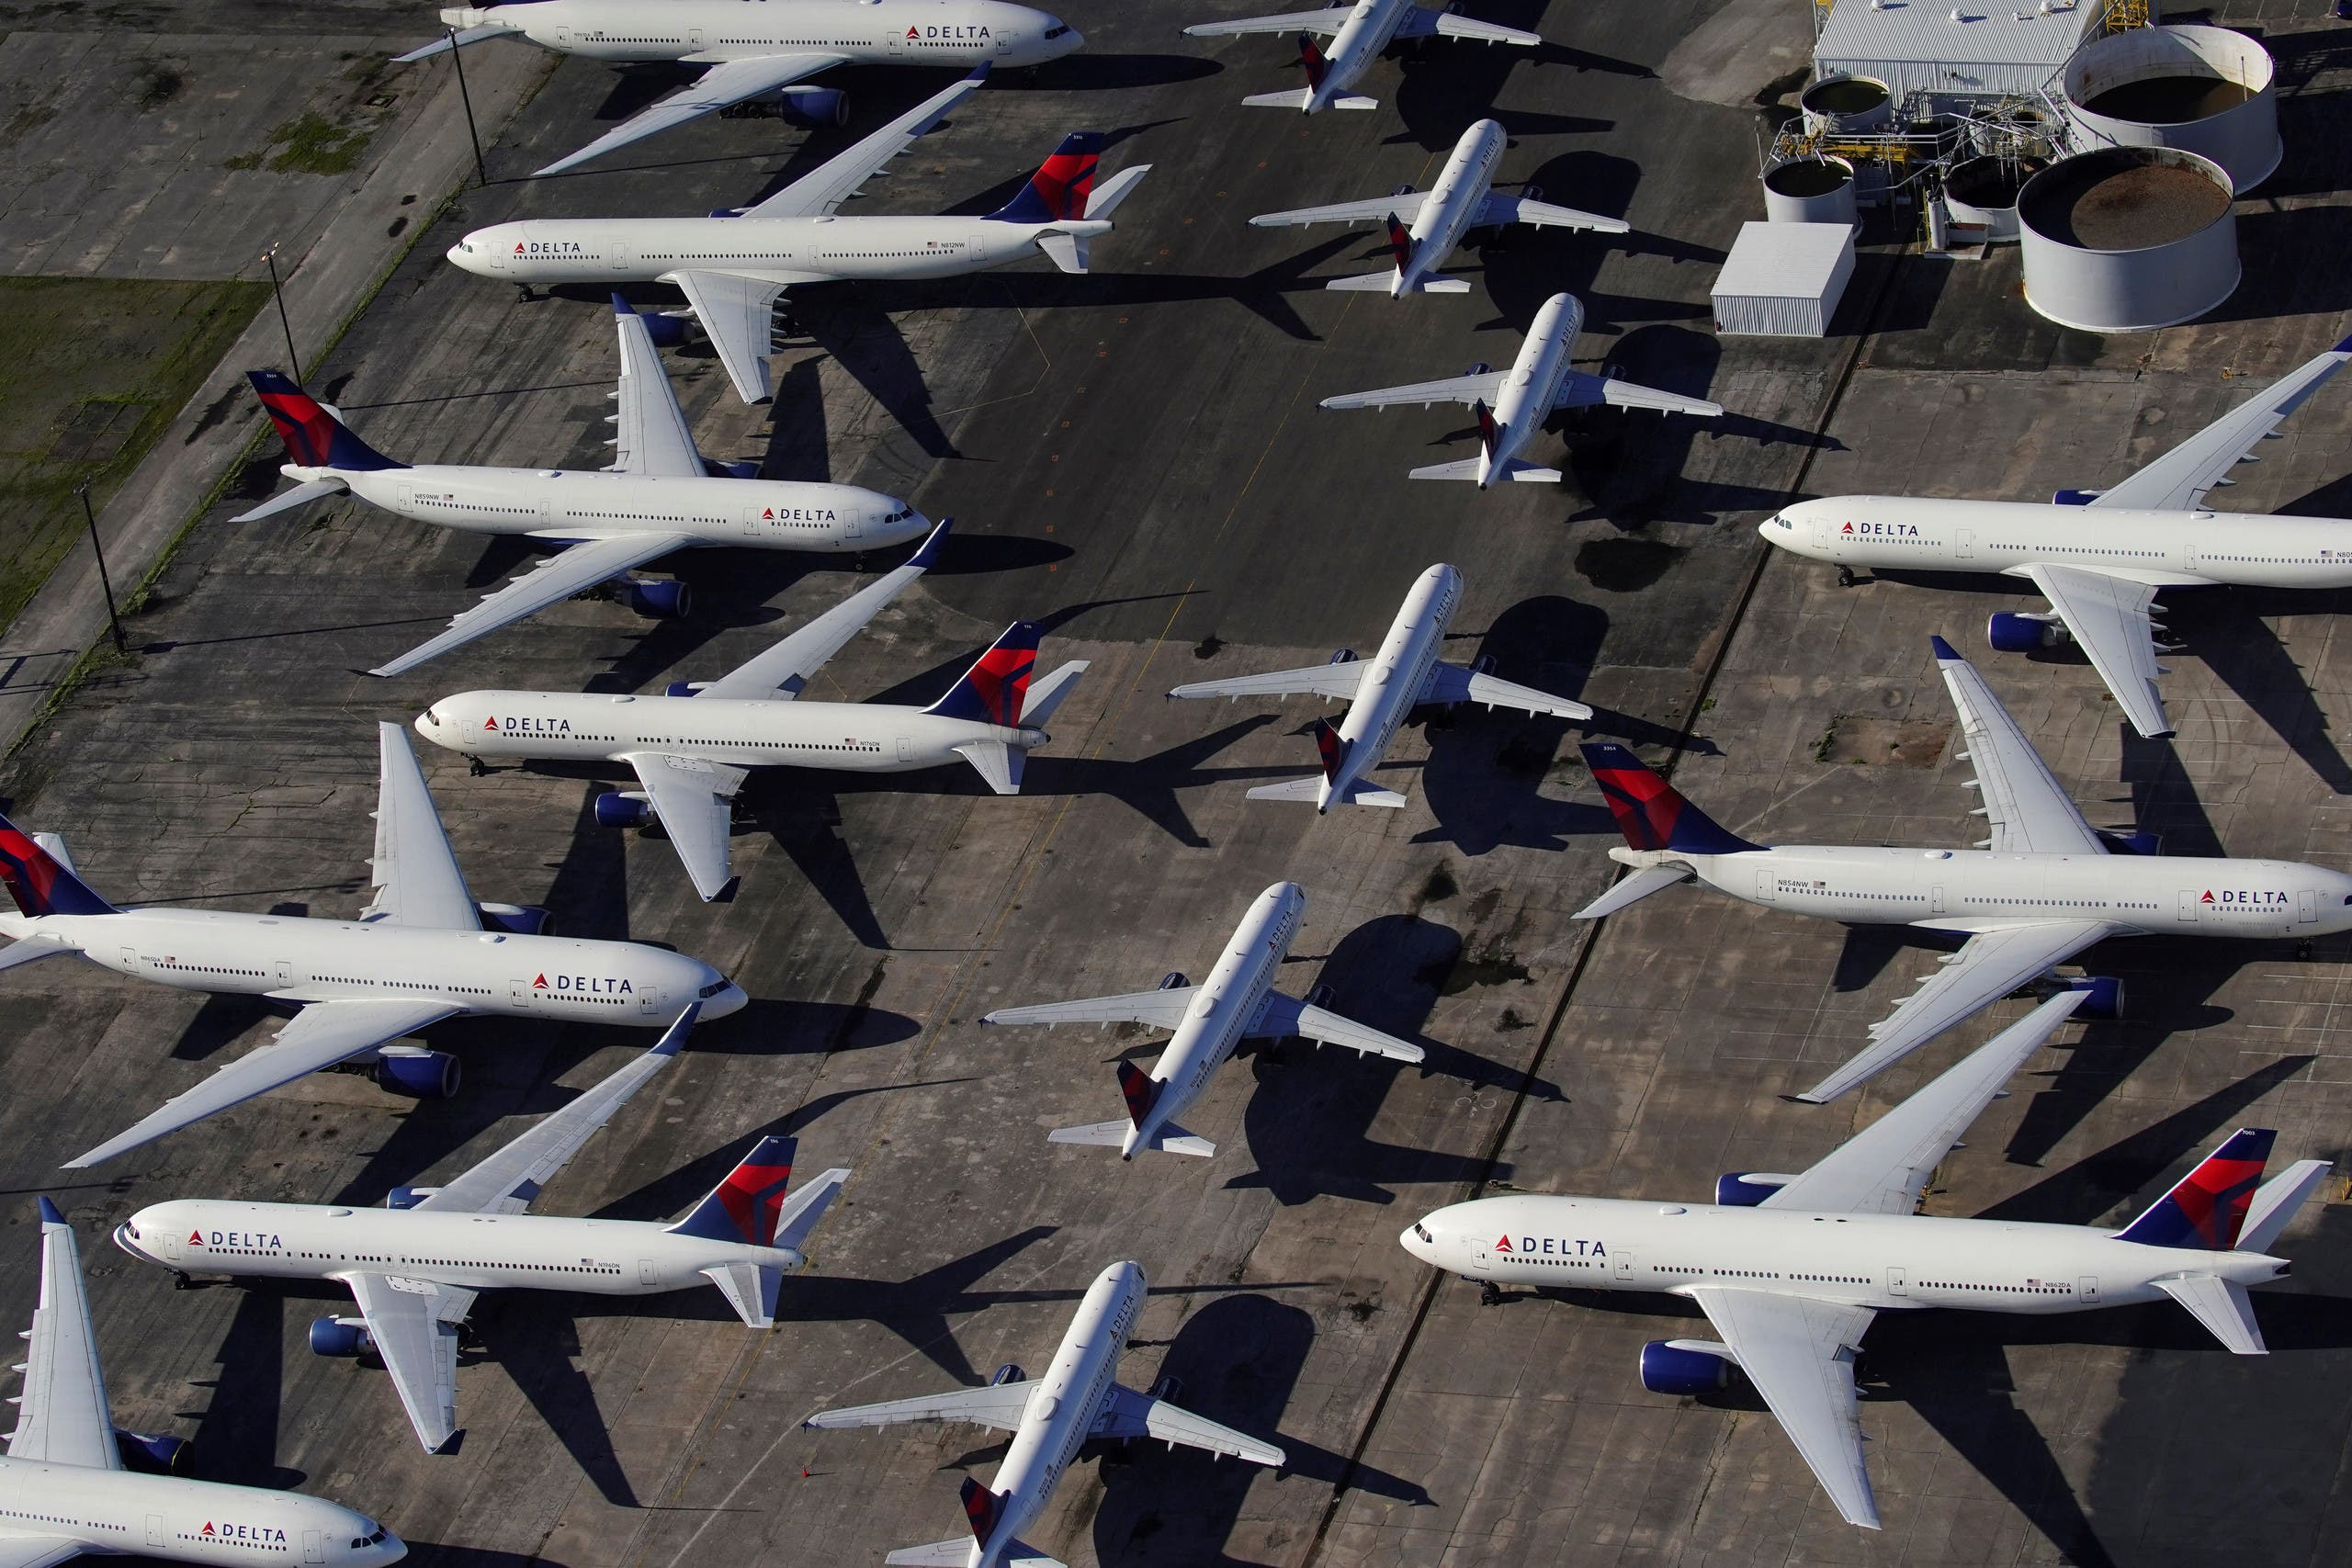 Delta Air Lines passenger planes parked at Birmingham-Shuttlesworth international Airport in Alabama, US, due to the coronavirus pInandemic. (File photo: Reuters)